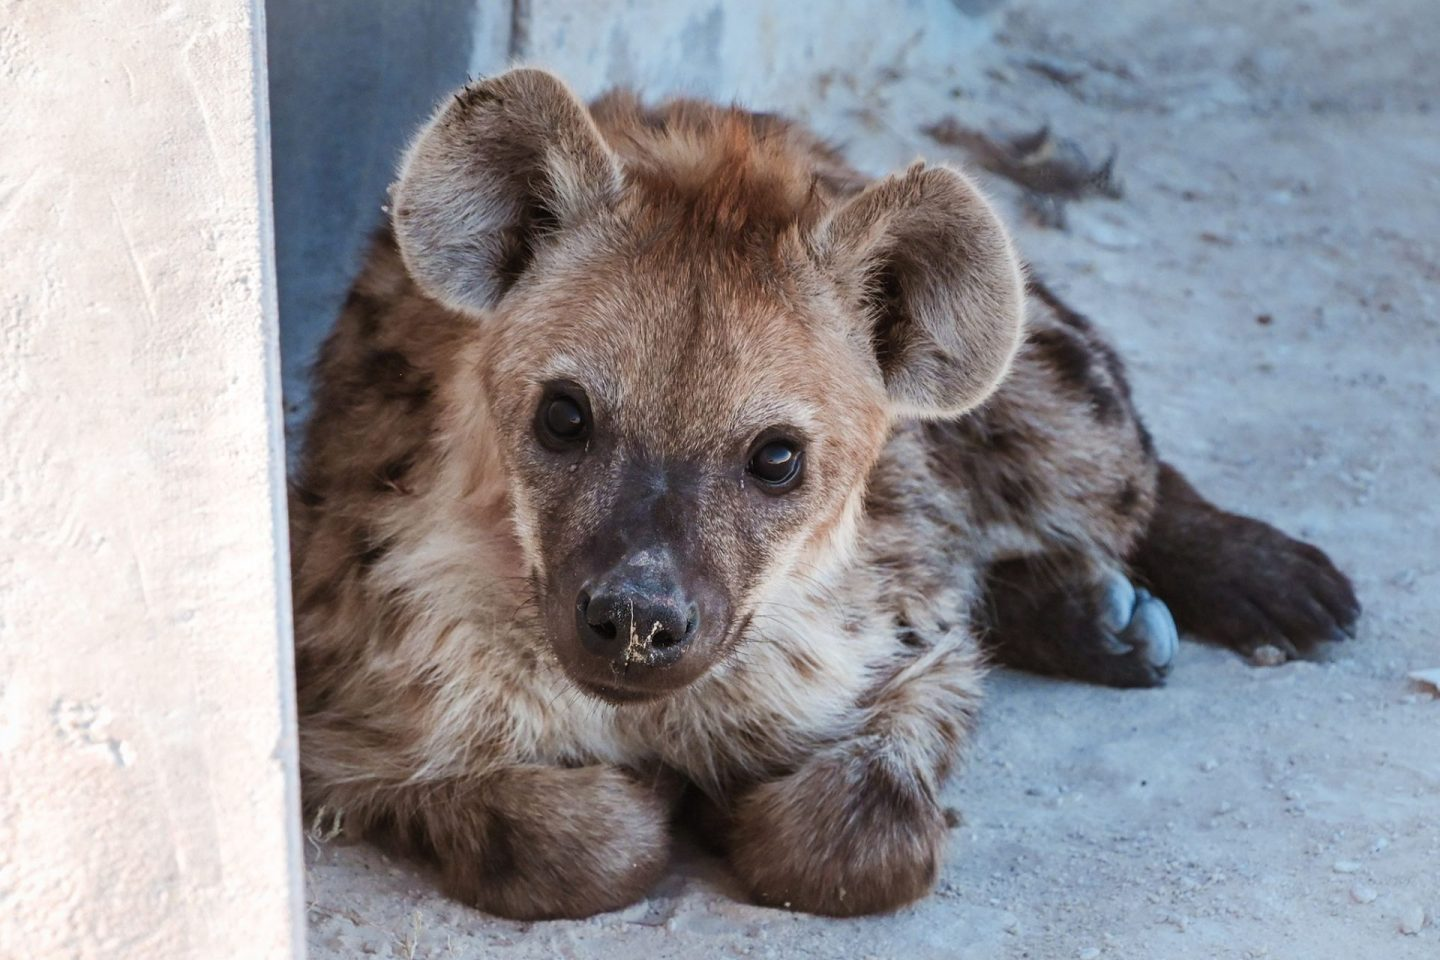 Baby hyena on Namibia self drive safari in Etosha National Park